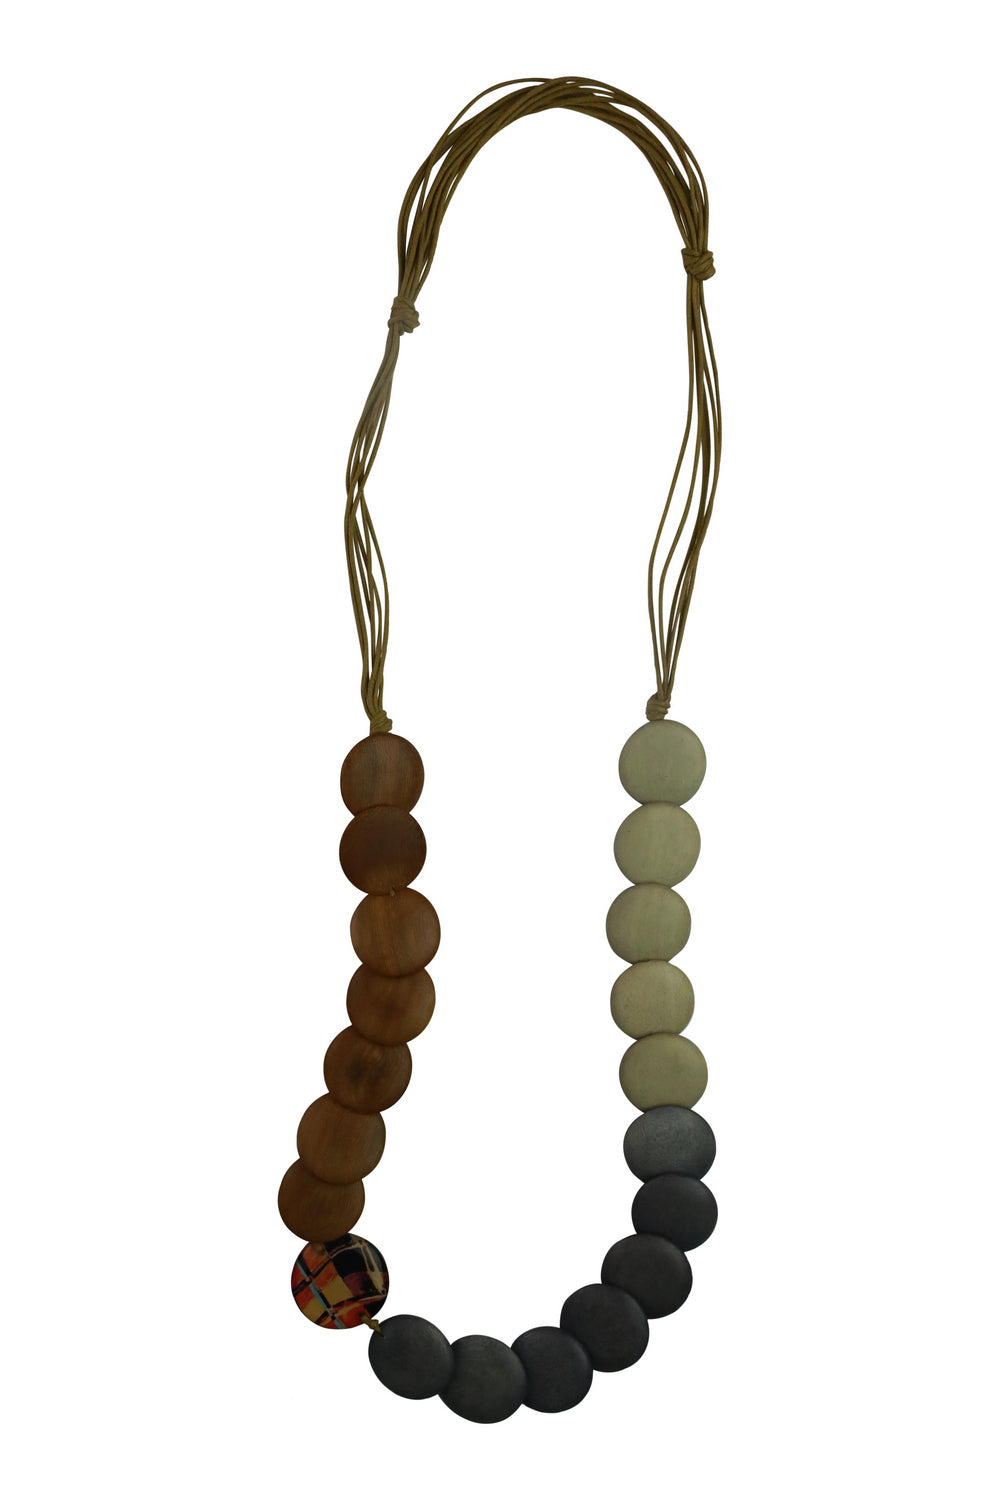 Button Detail Necklace - Tan - Kenzie Tenzie